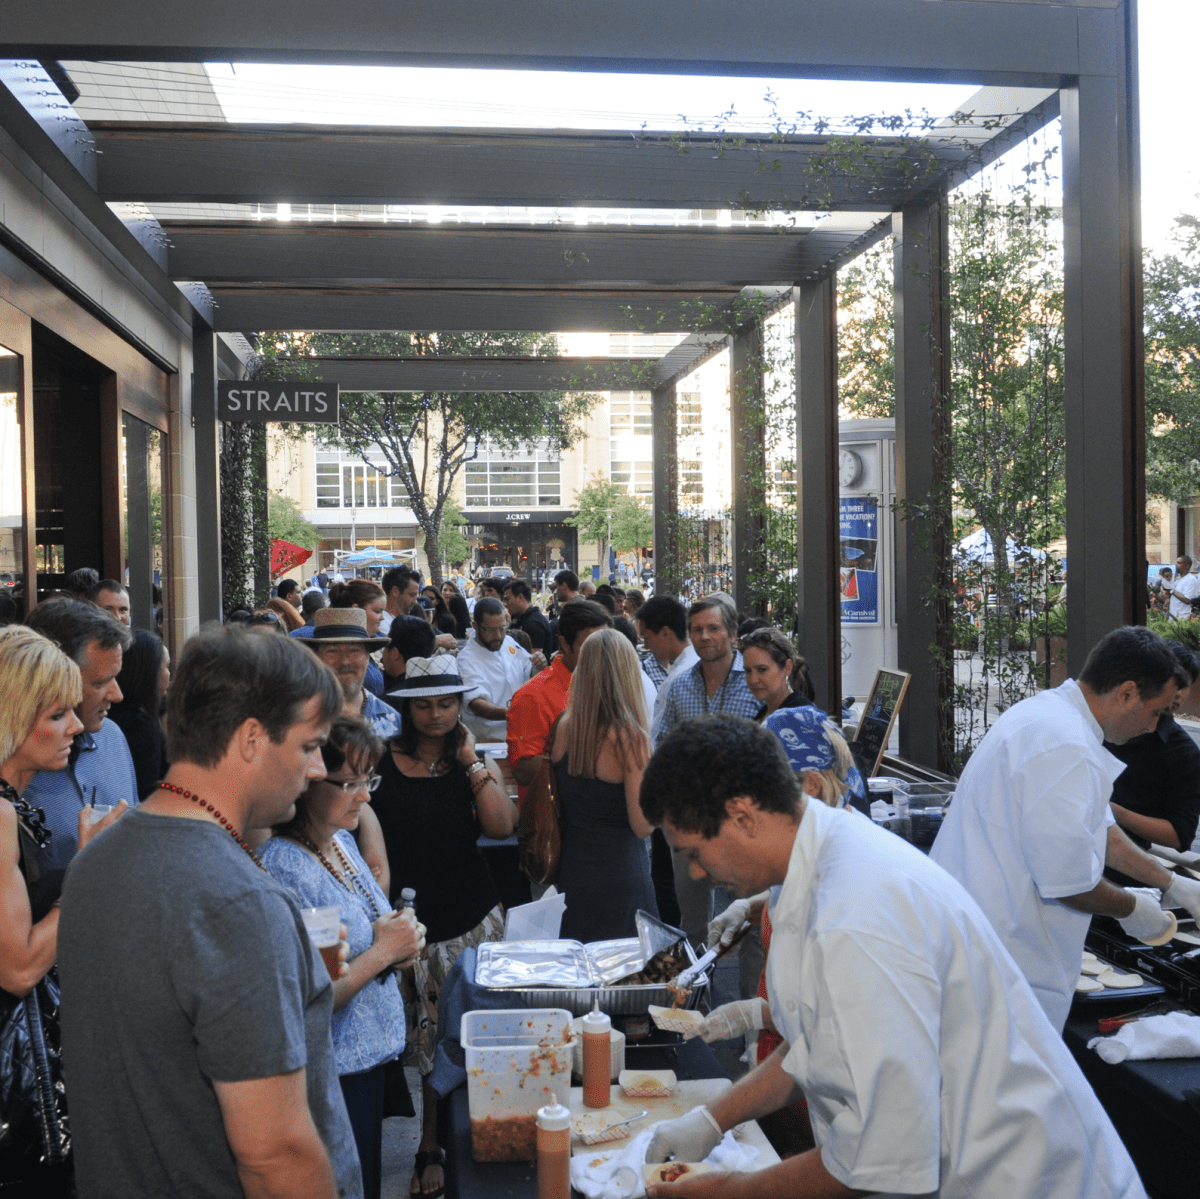 The crowd at the Curry Crawl May 2014